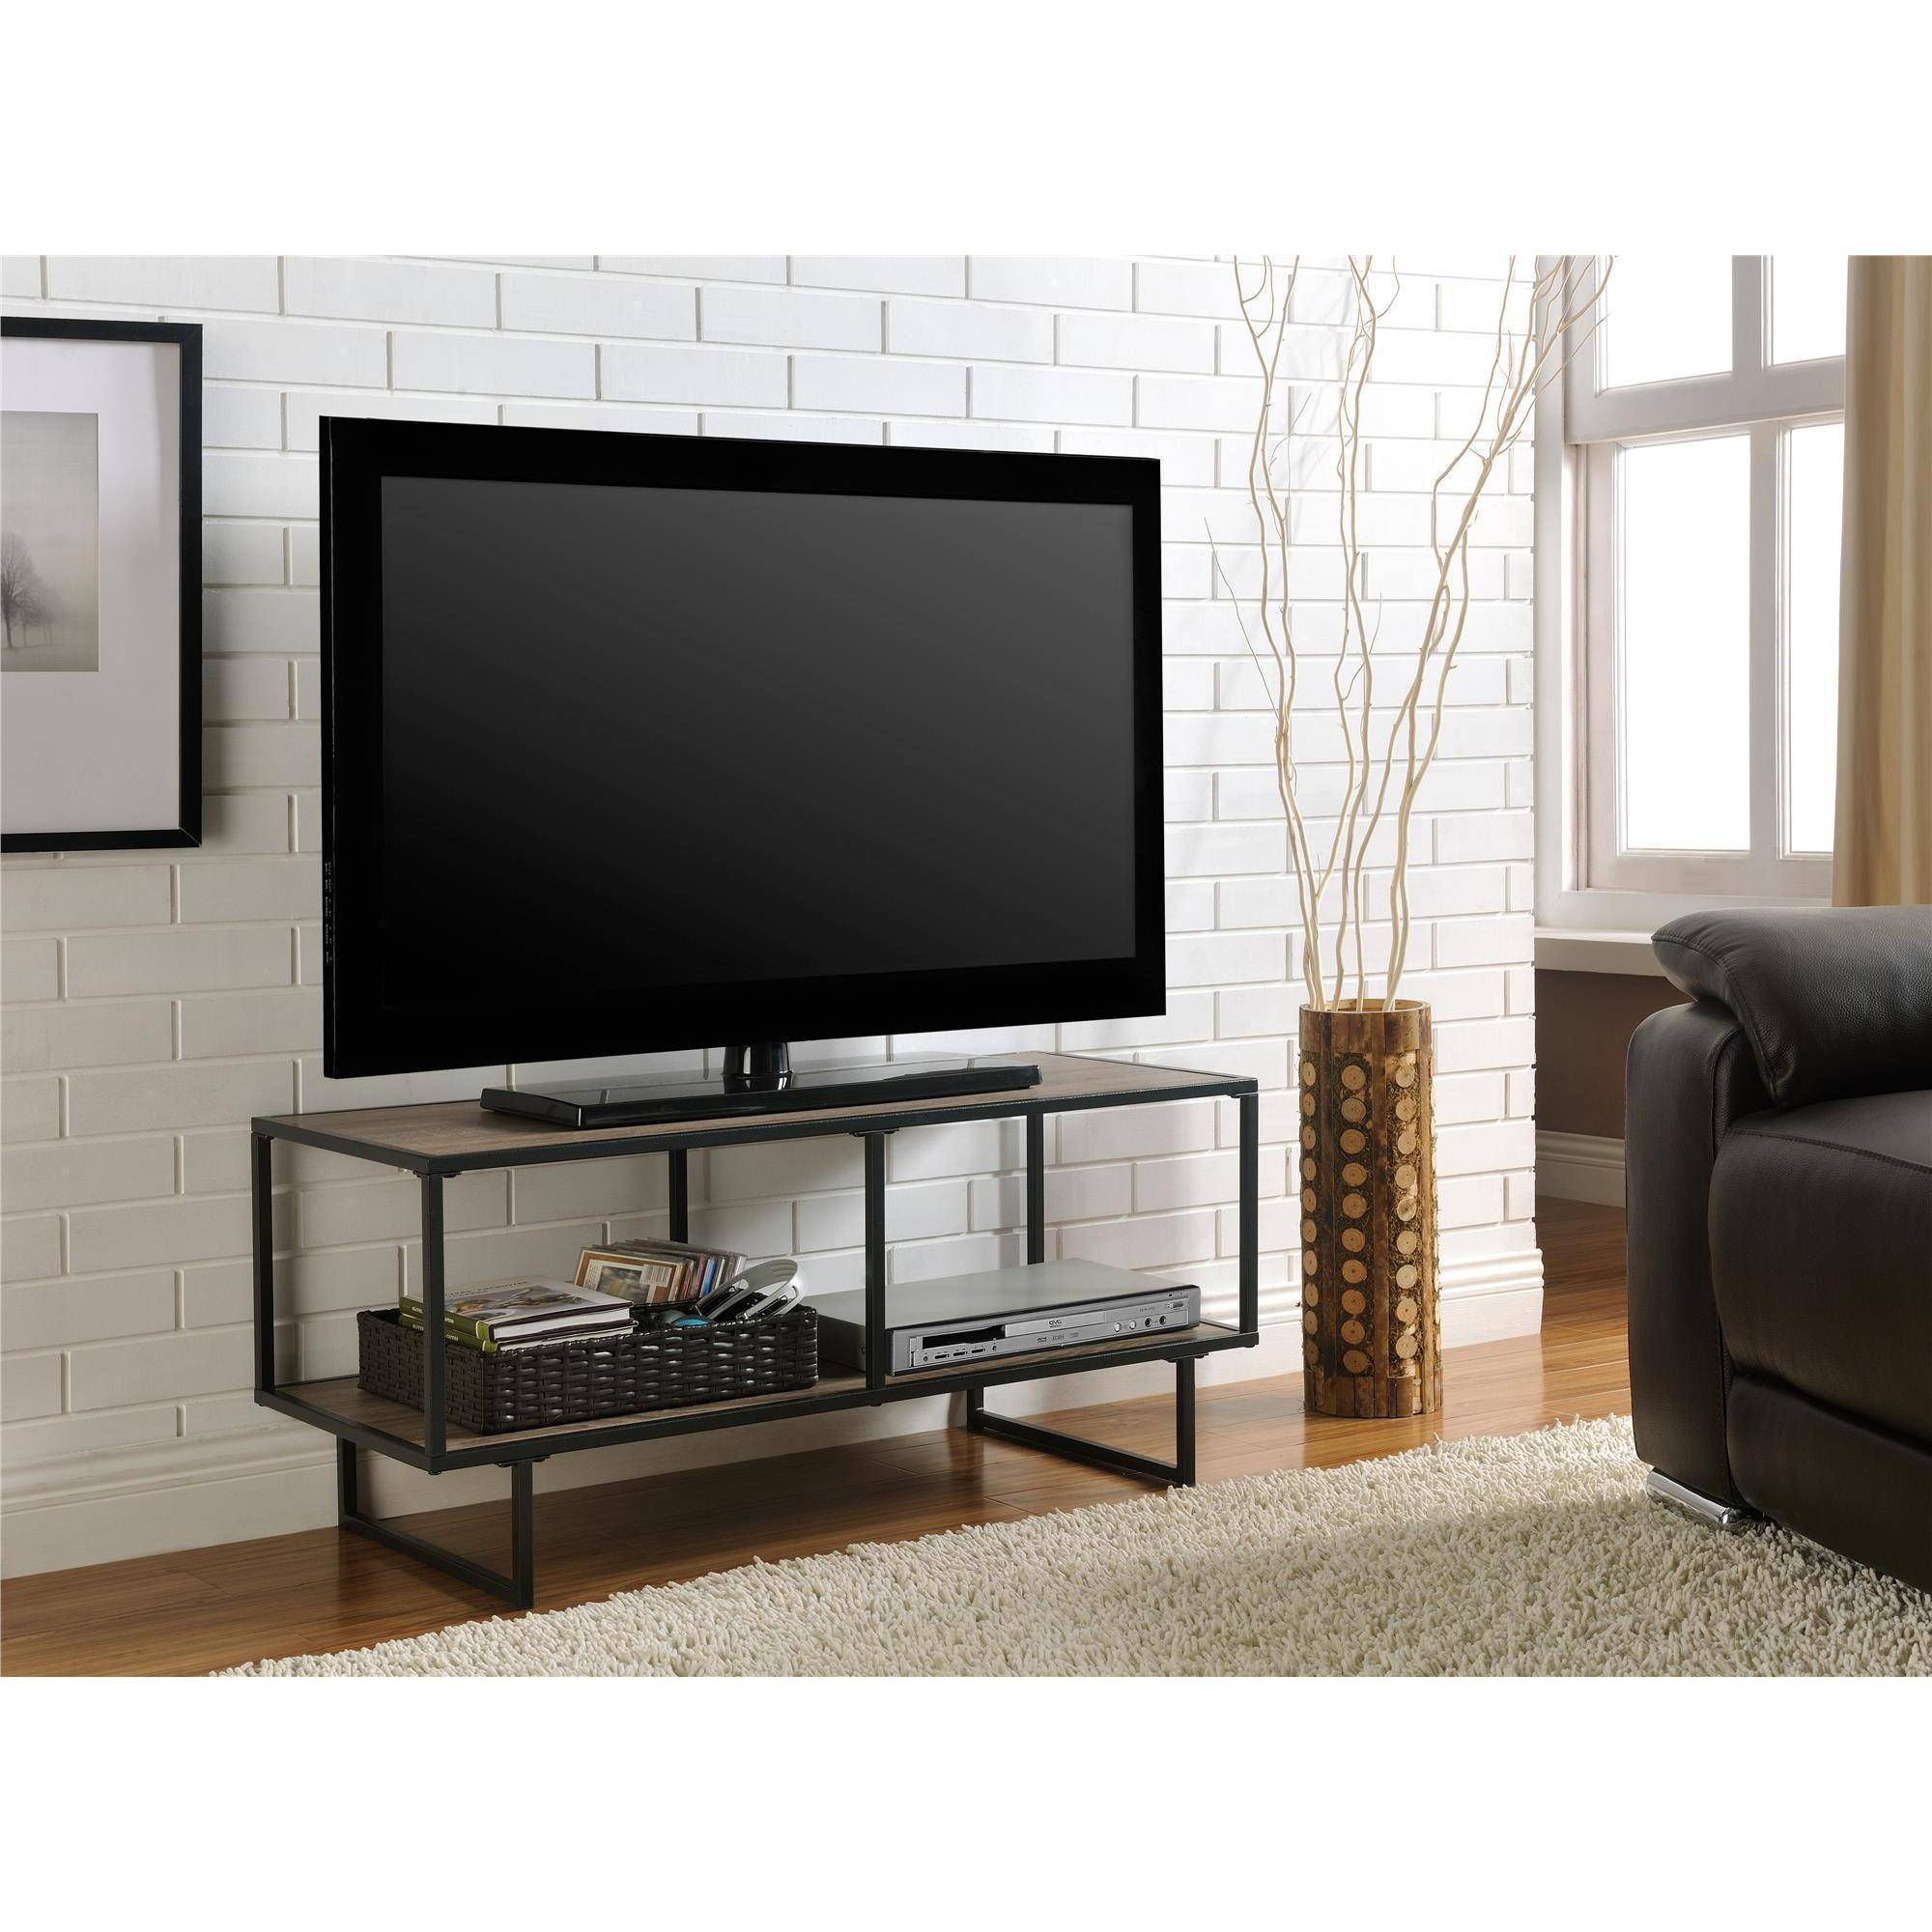 "Ameriwood Home Emmett Tv Stand/coffee Table For Tvs Up To 42"" Wide for Tv Unit and Coffee Table Sets (Image 1 of 30)"